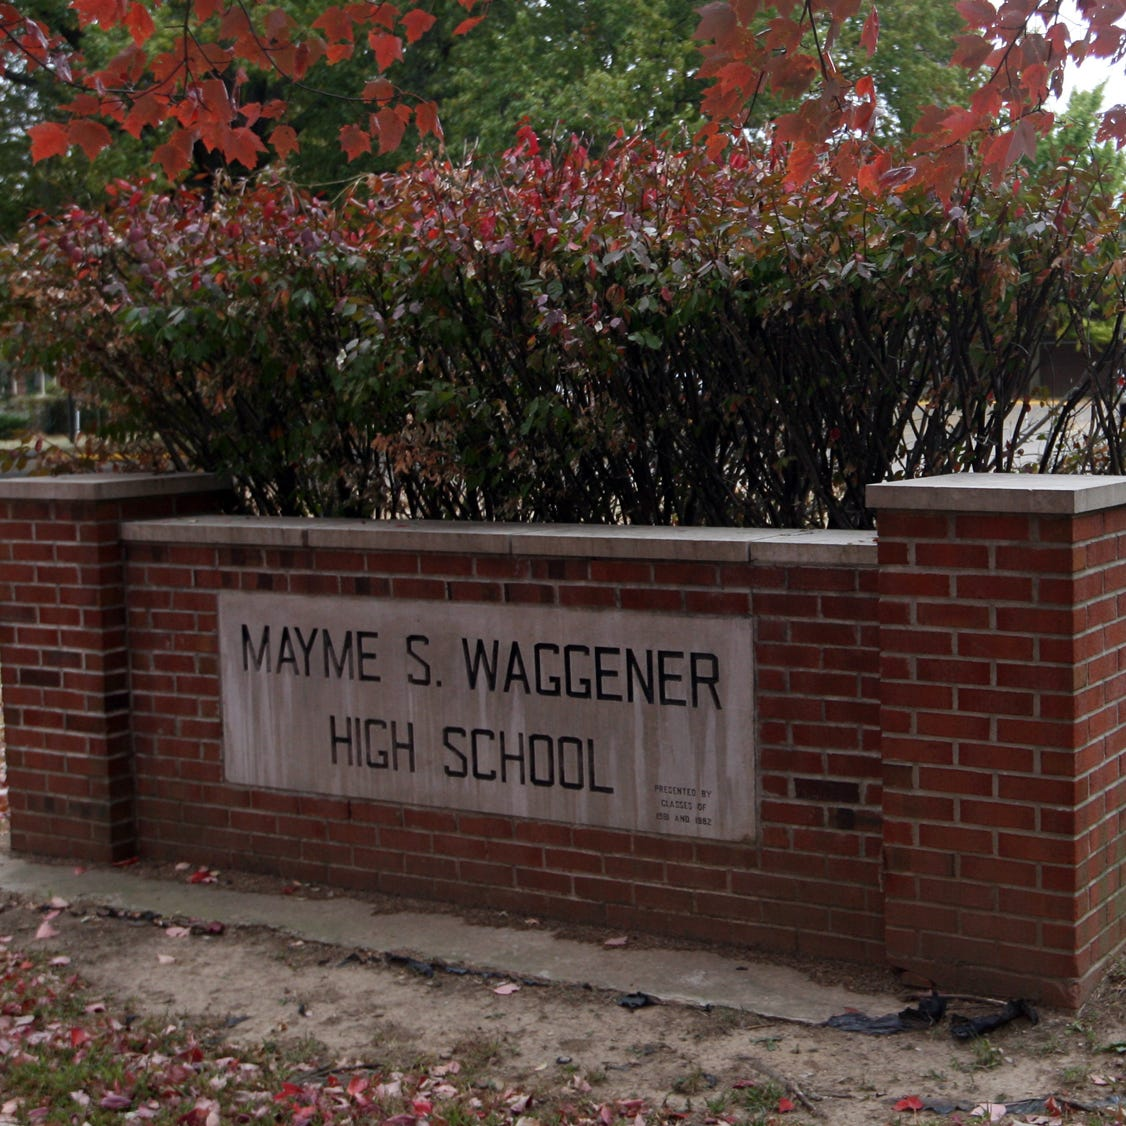 Waggener High School teacher resigns after fight with student, JCPS says